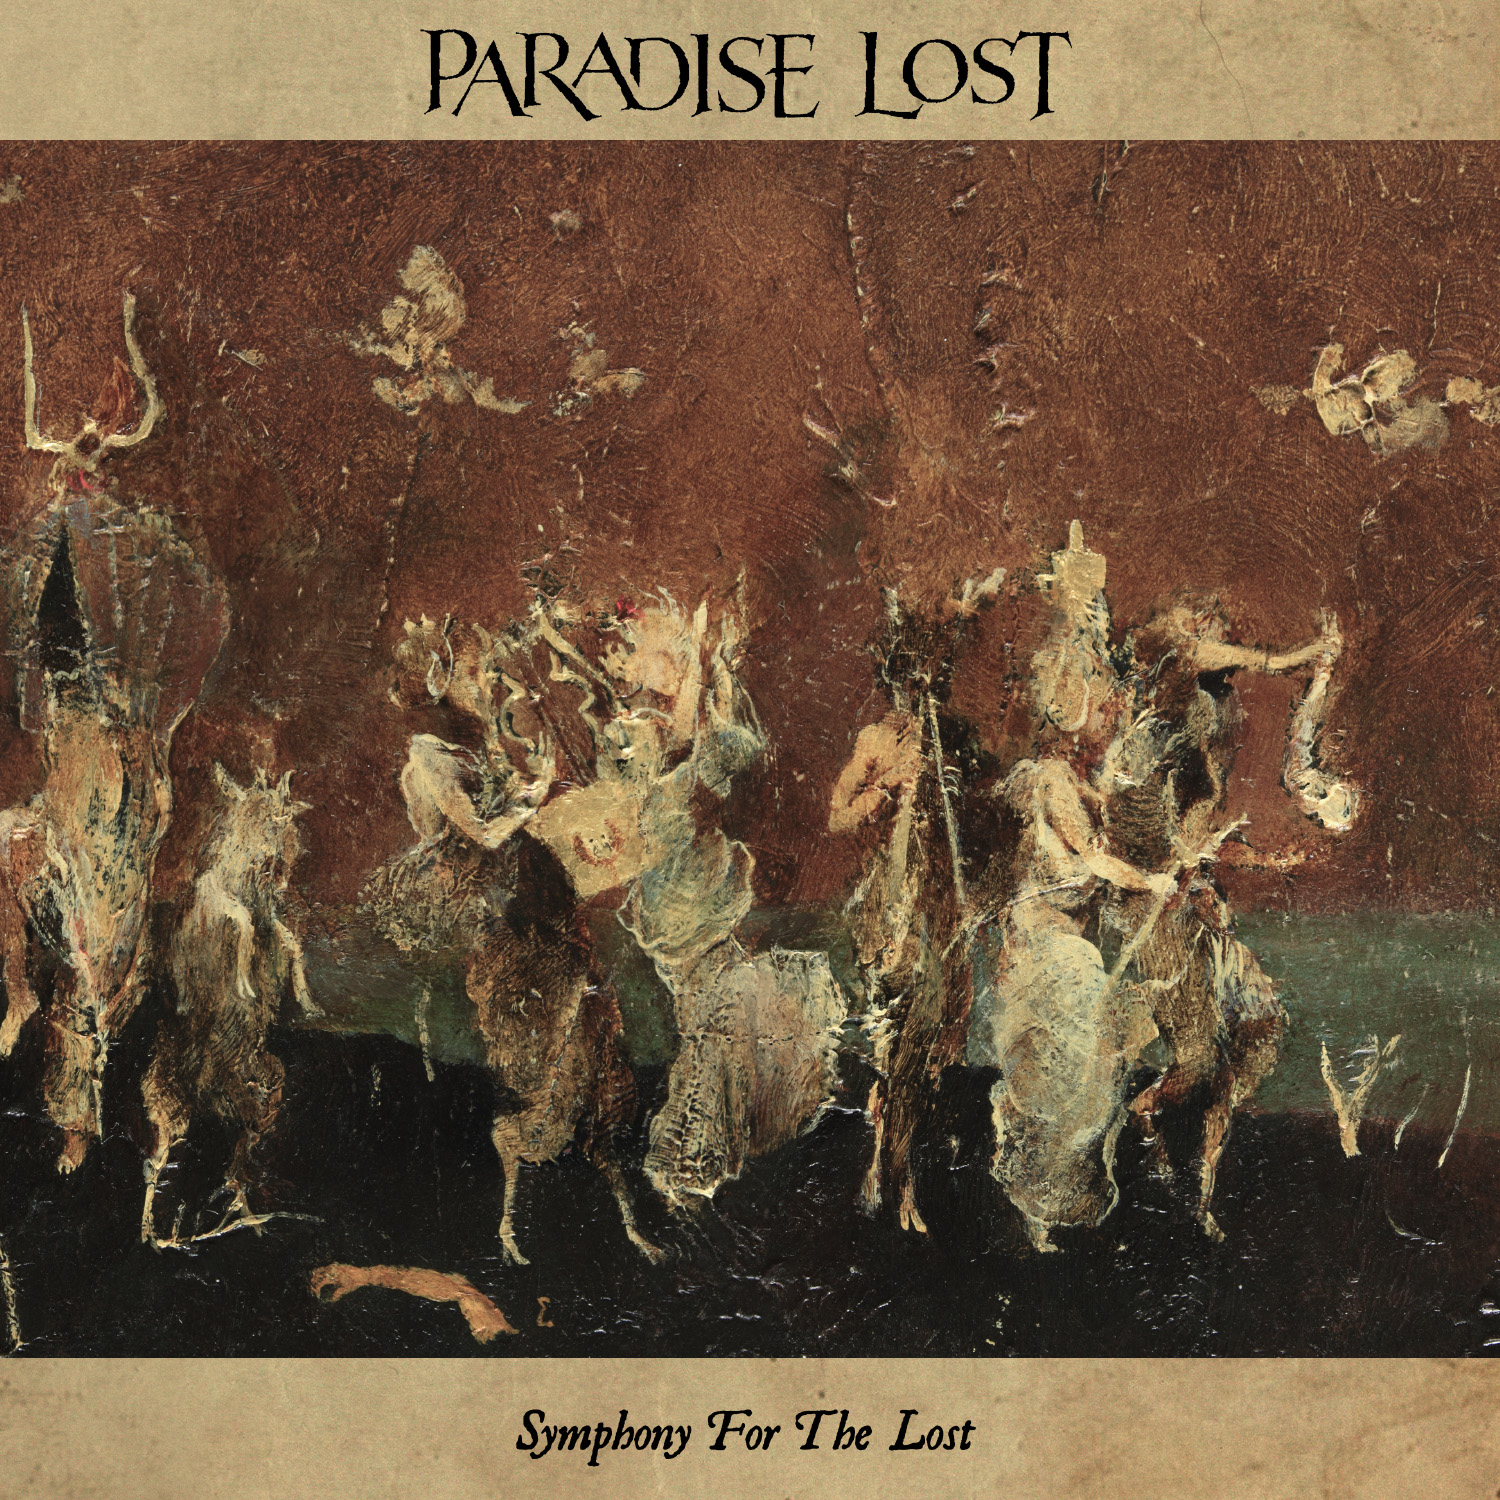 PARADISE LOST ANNOUNCE LIVE ALBUM 'SYMPHONY FOR THE LOST'